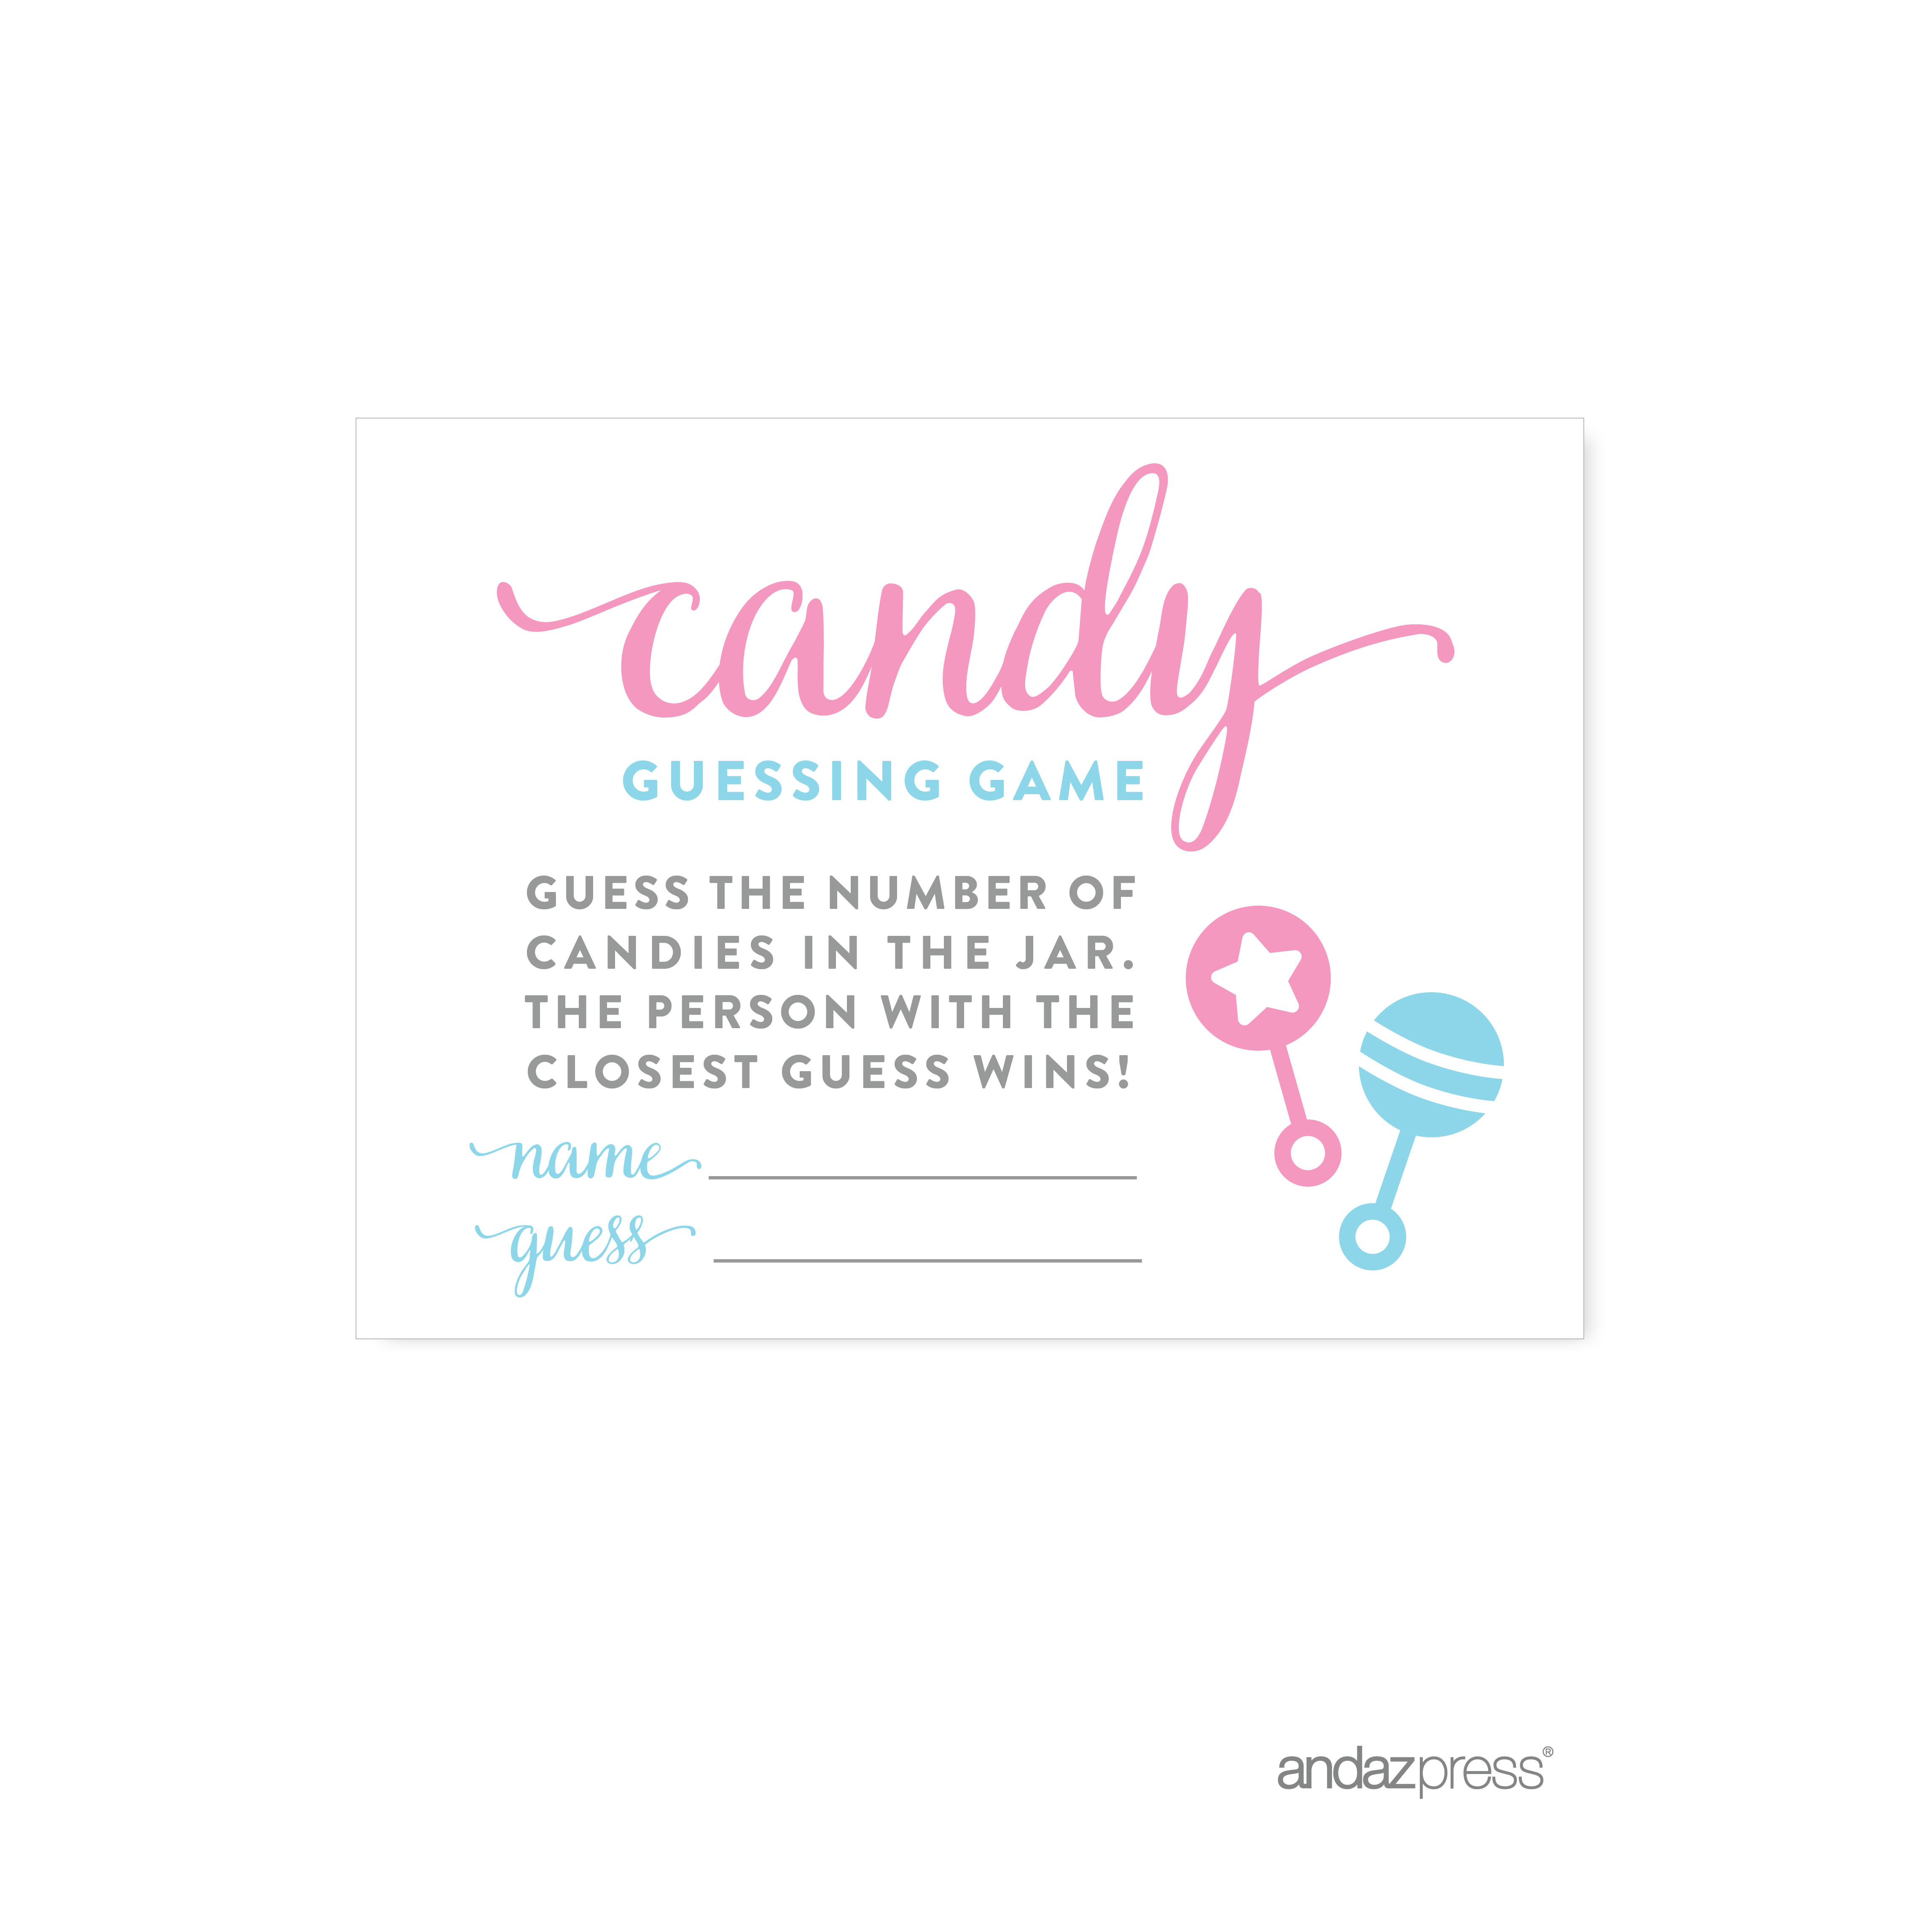 Candy Guessing Game Team Pink Blue Gender Reveal Baby Shower Games